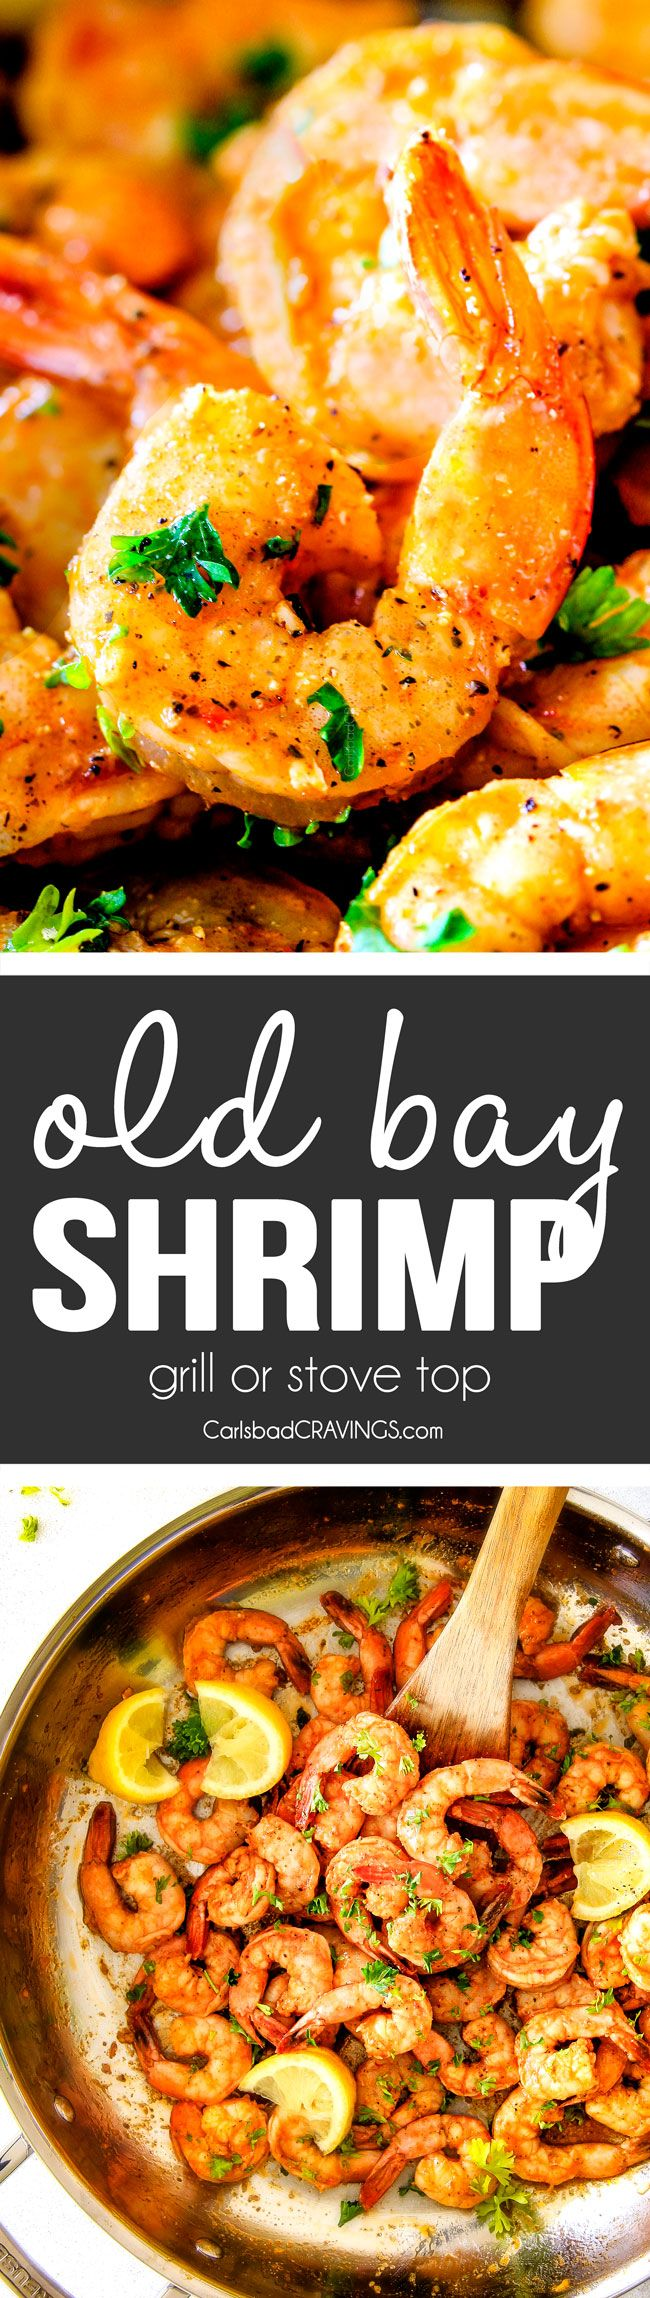 30 Minute quick and easy Old Bay Shrimp (Grill or Stove top) is so juicy and flavorful and the homemade Cocktail Sauce is amazing!  Serve it as an appetizer or add some sides and call it dinner!